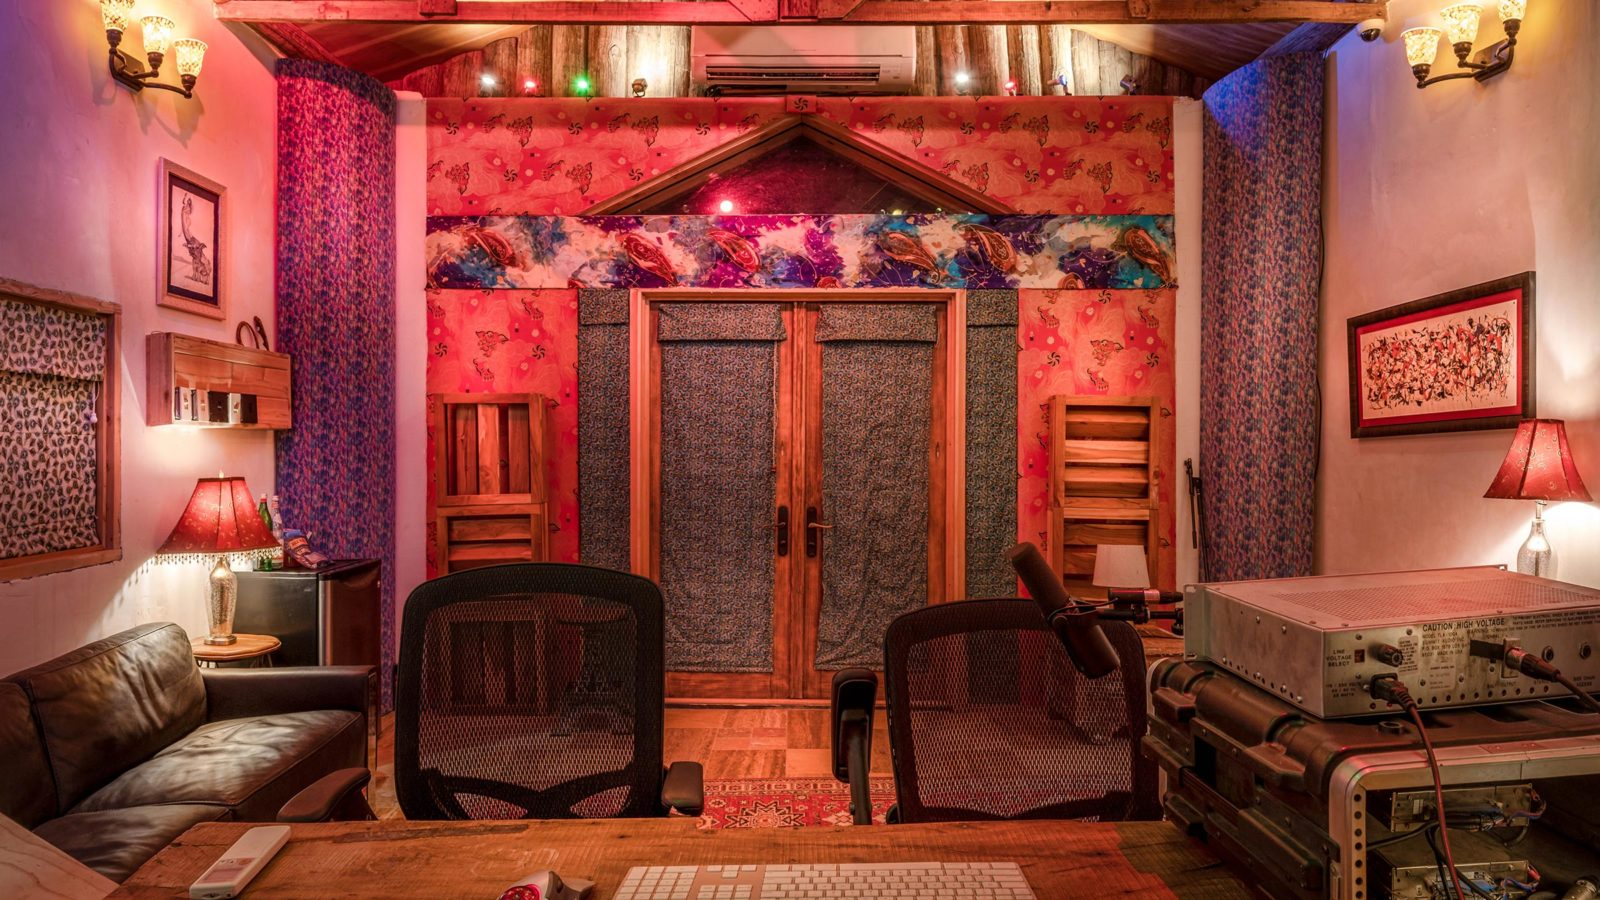 Studio Adobe Bungalow from front